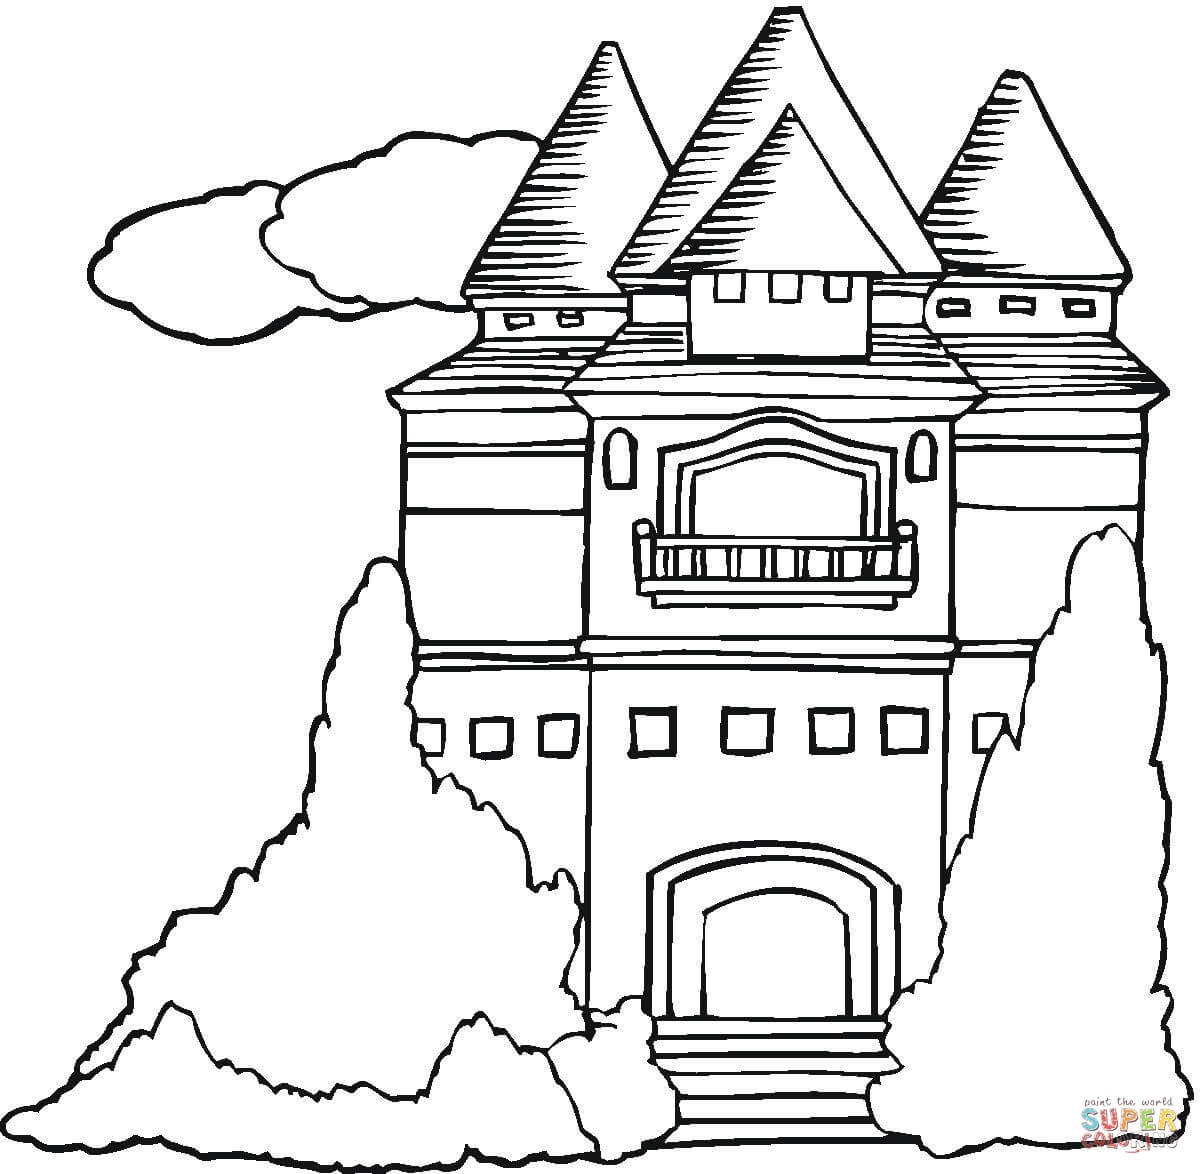 Mansion coloring #12, Download drawings